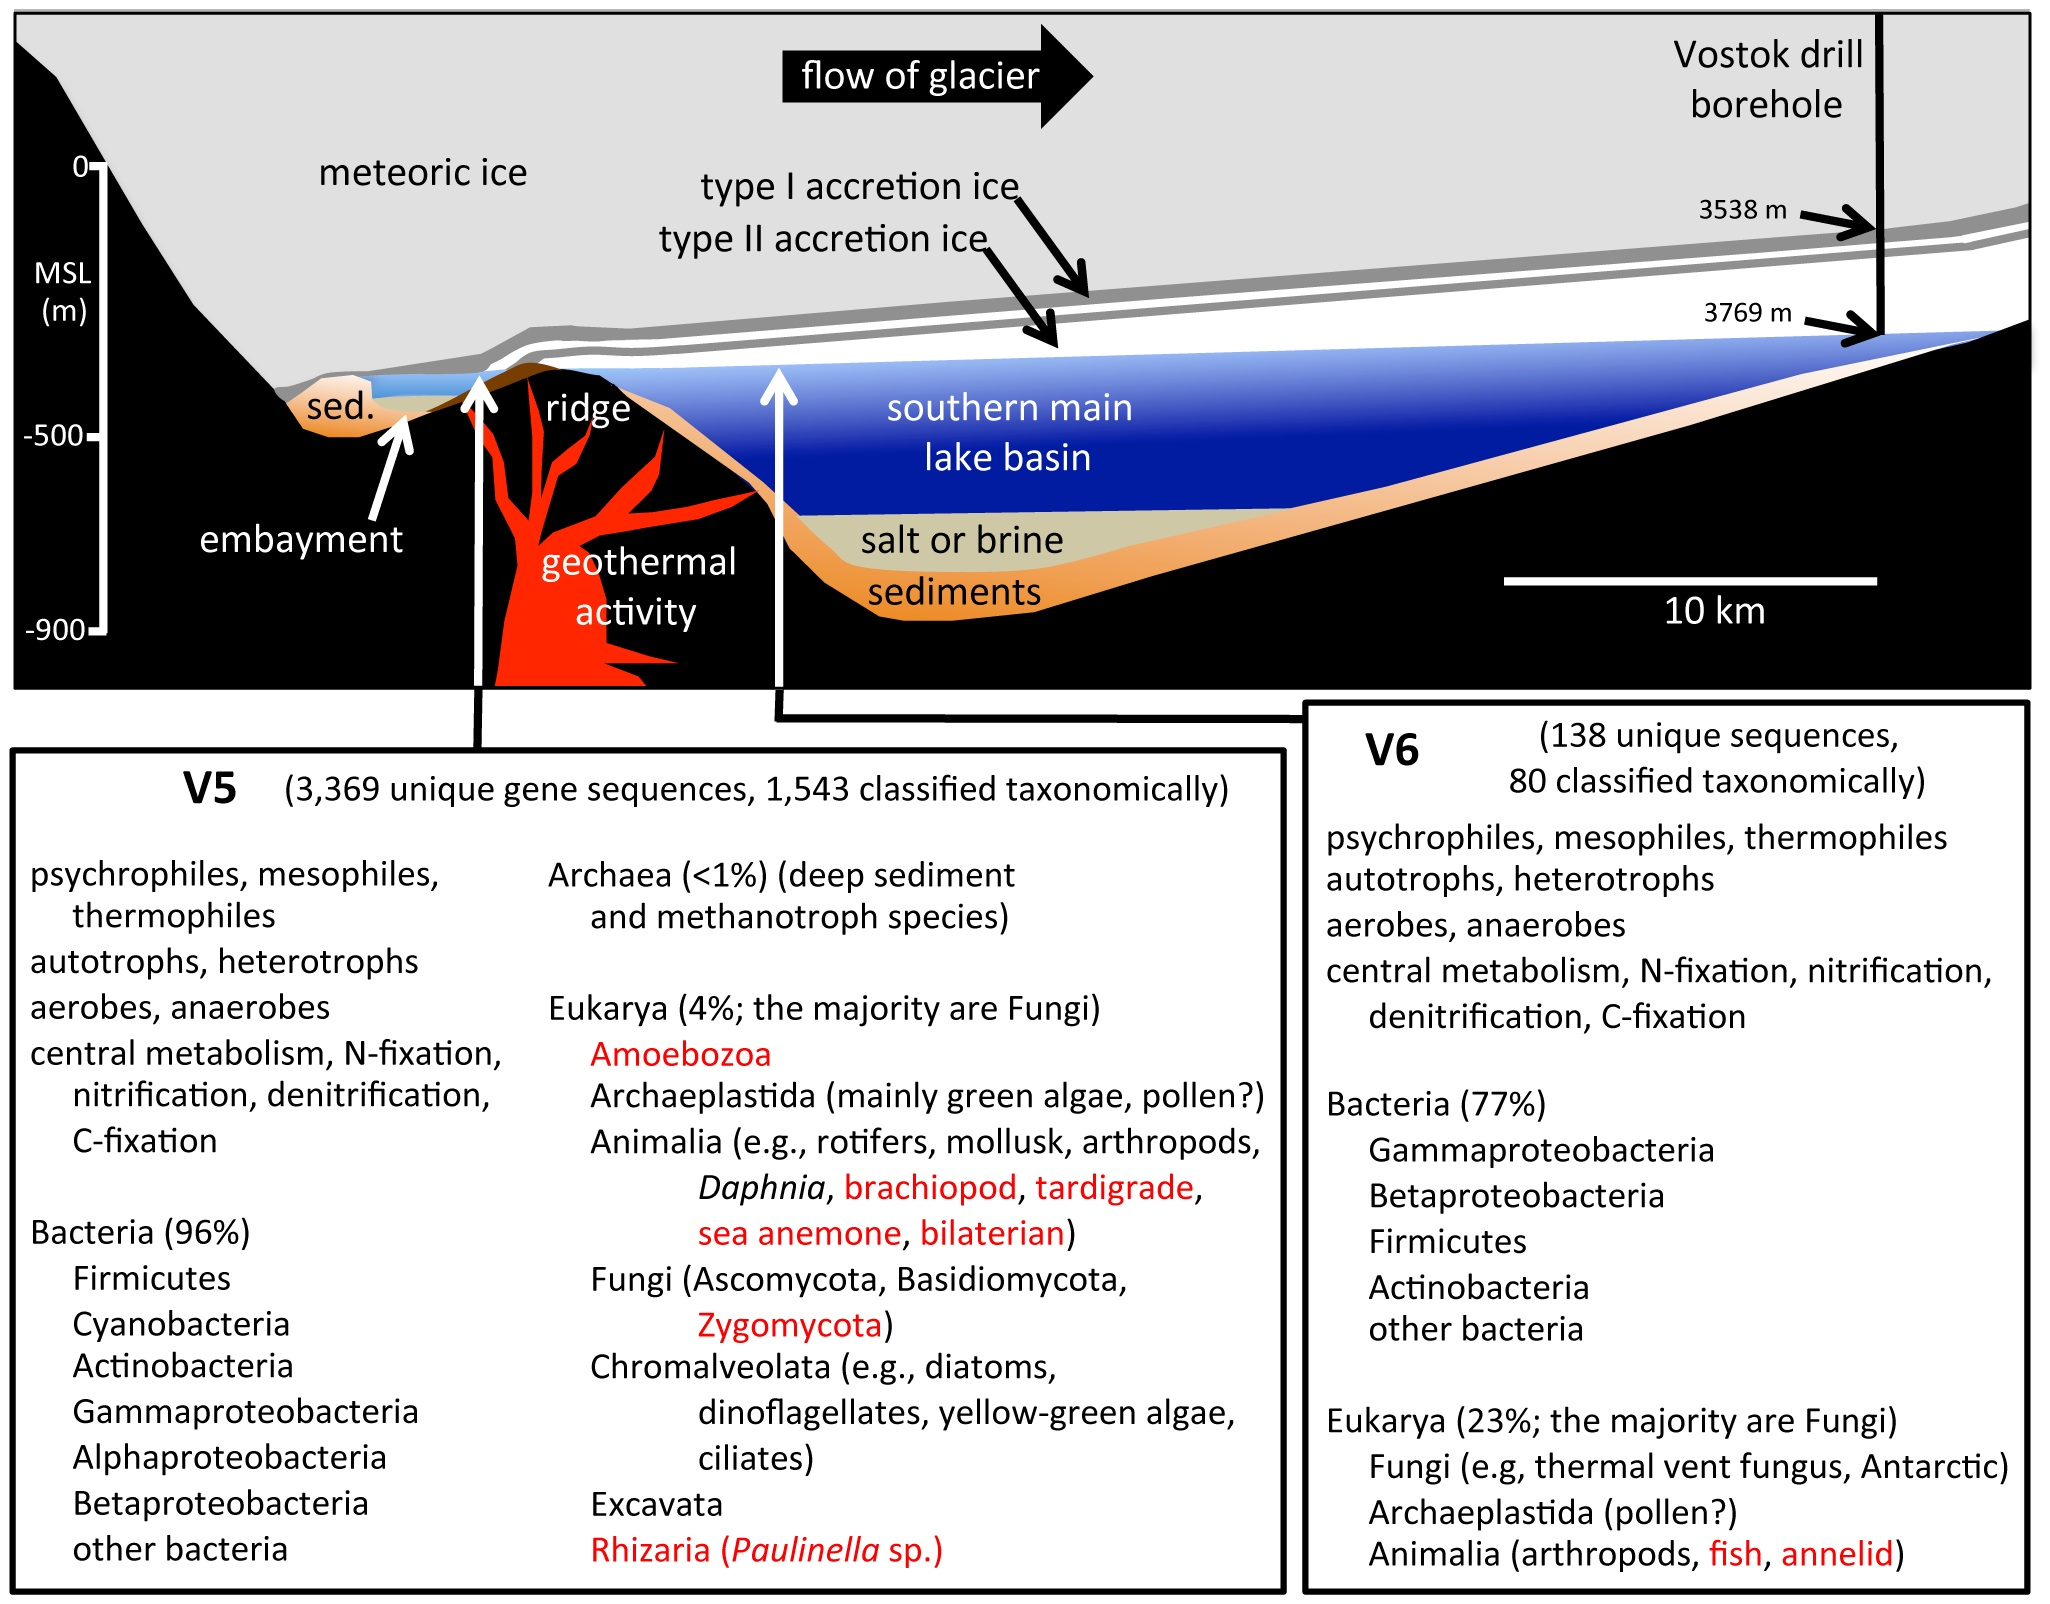 Schematic cross-section of Lake Vostok. From PLoS One